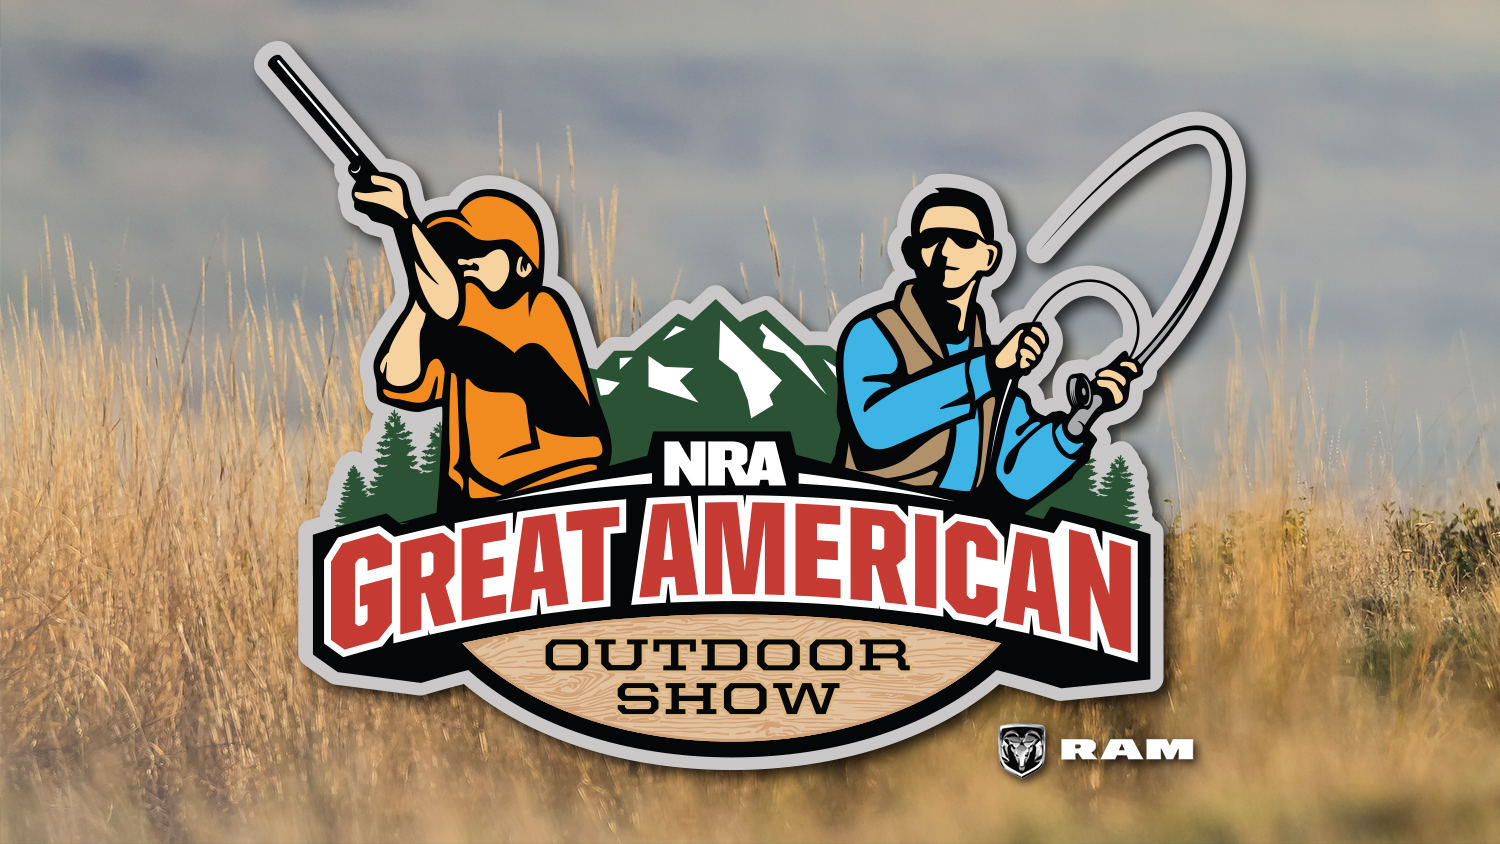 Tickets On Sale Now for the Great American Outdoor Show!